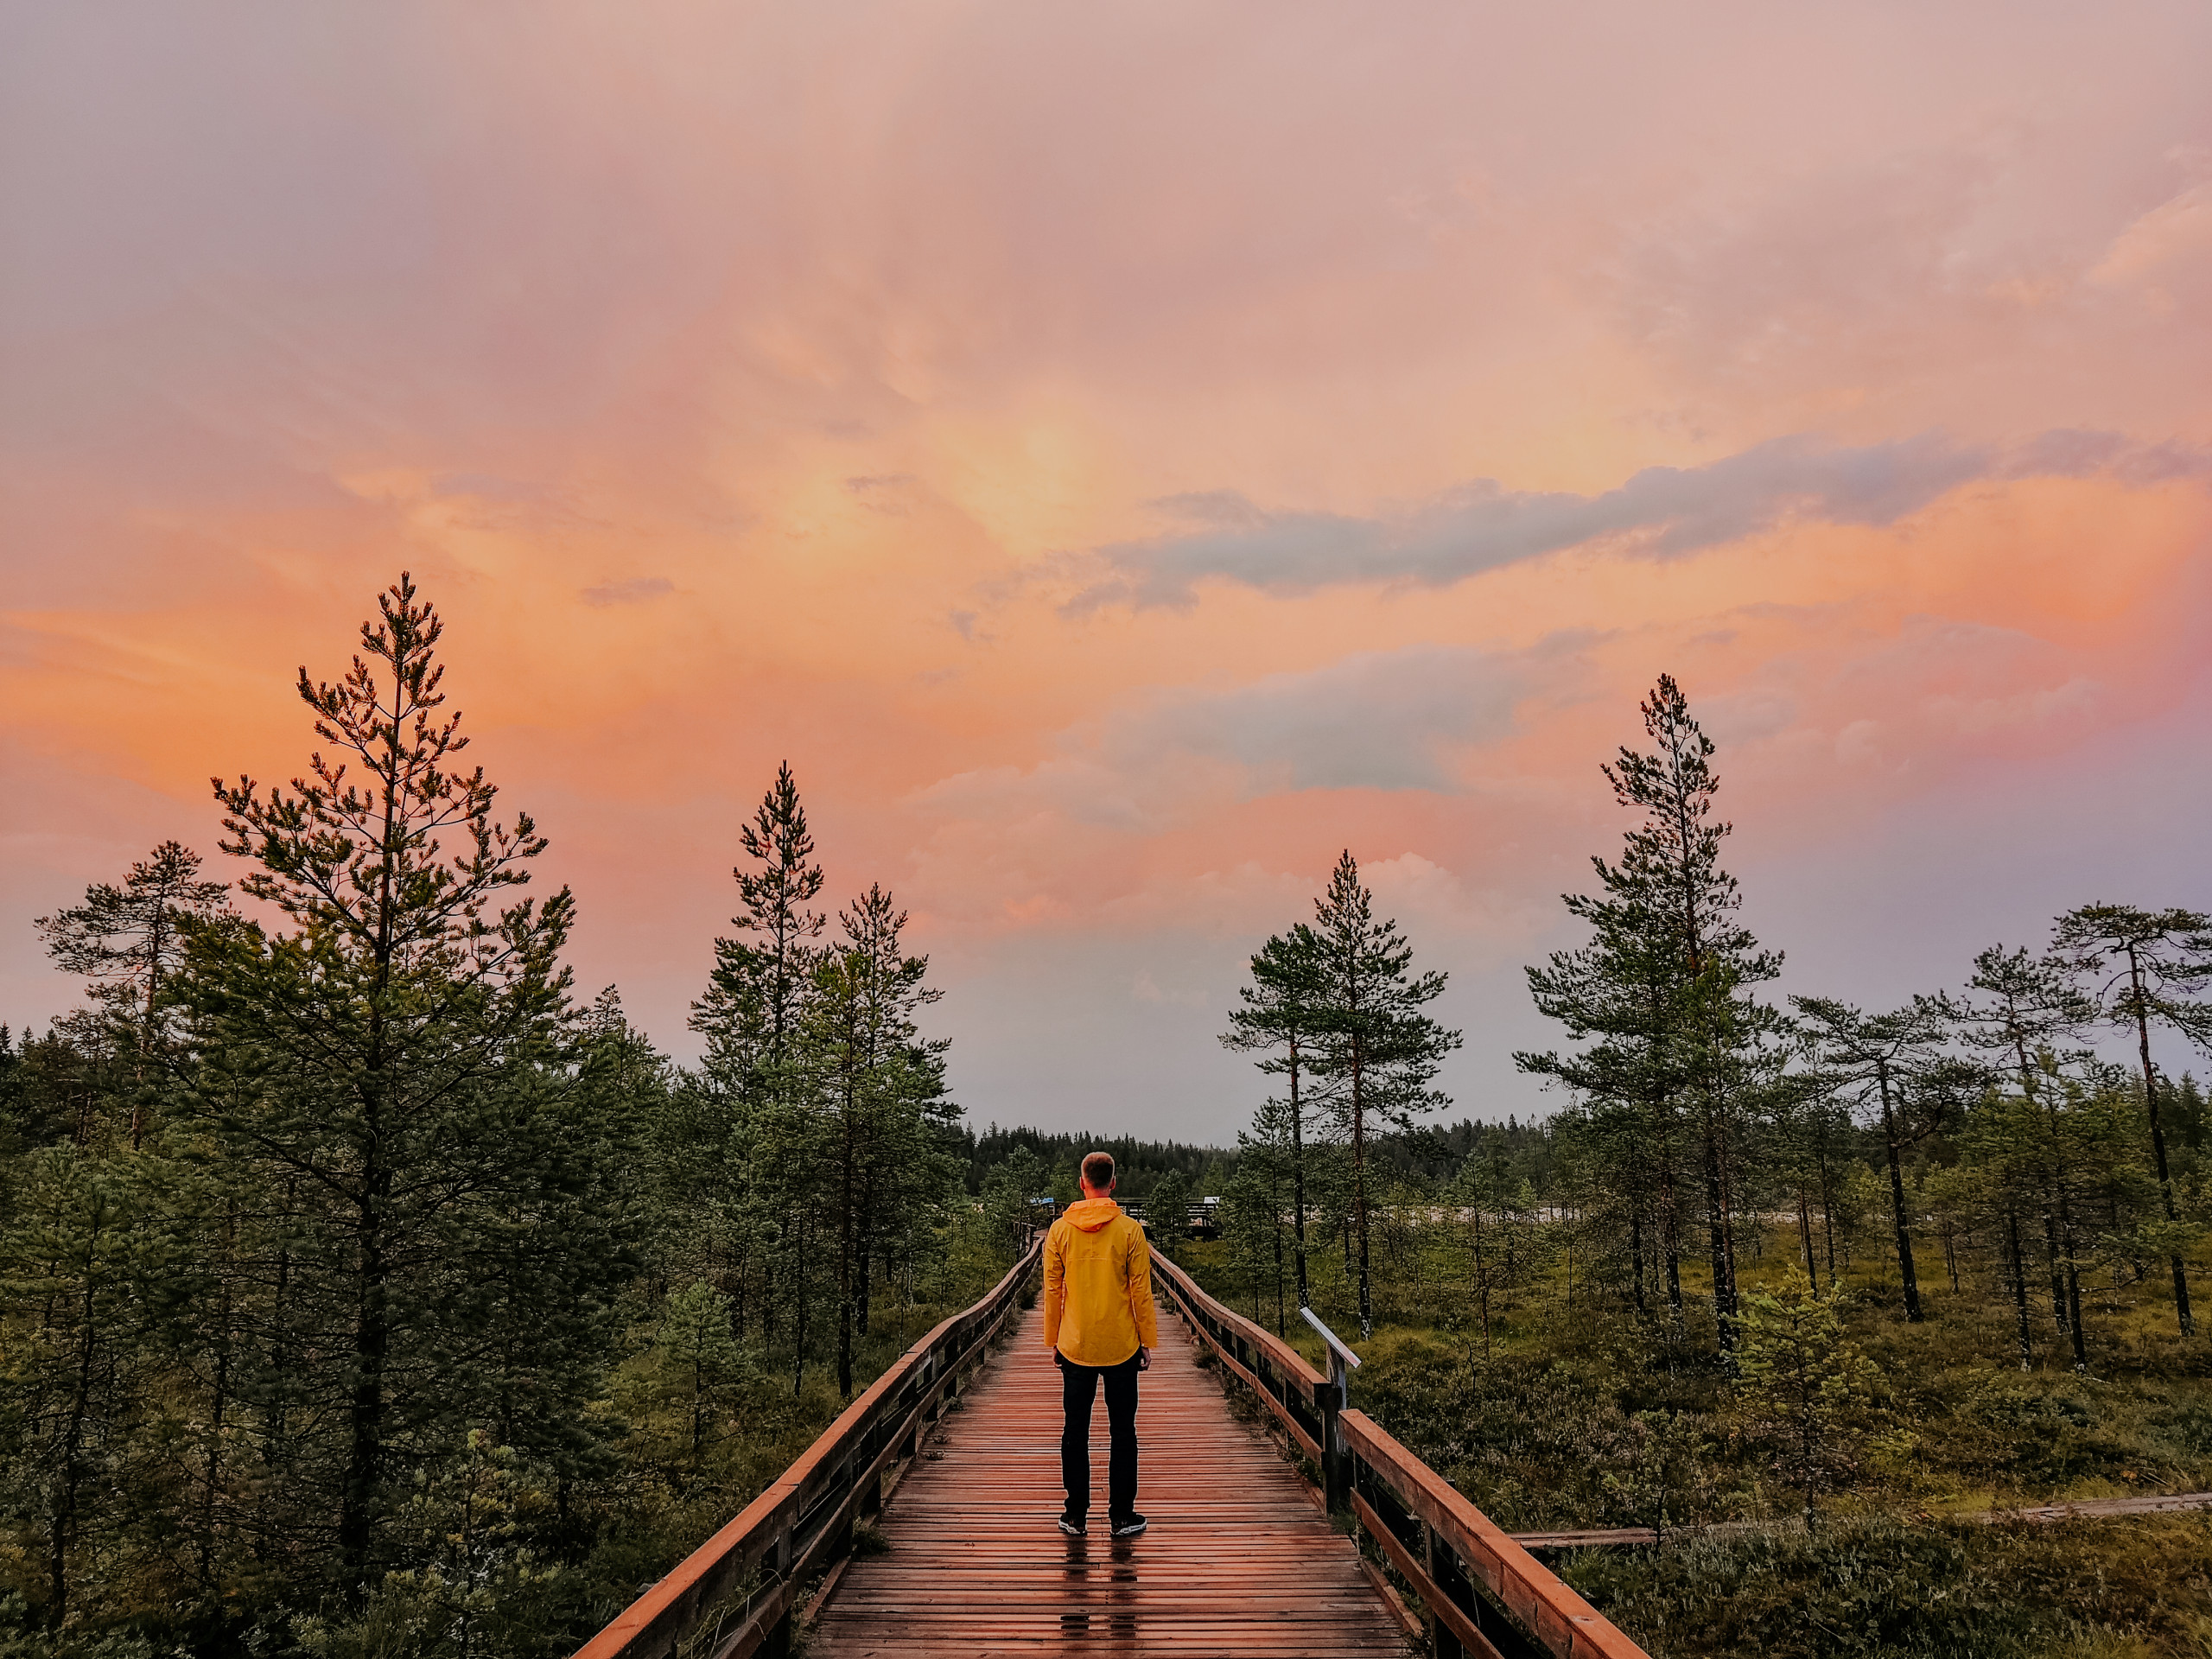 Man standing in a yellow jacket on a wooden walkway overlooking a forest in Finland.